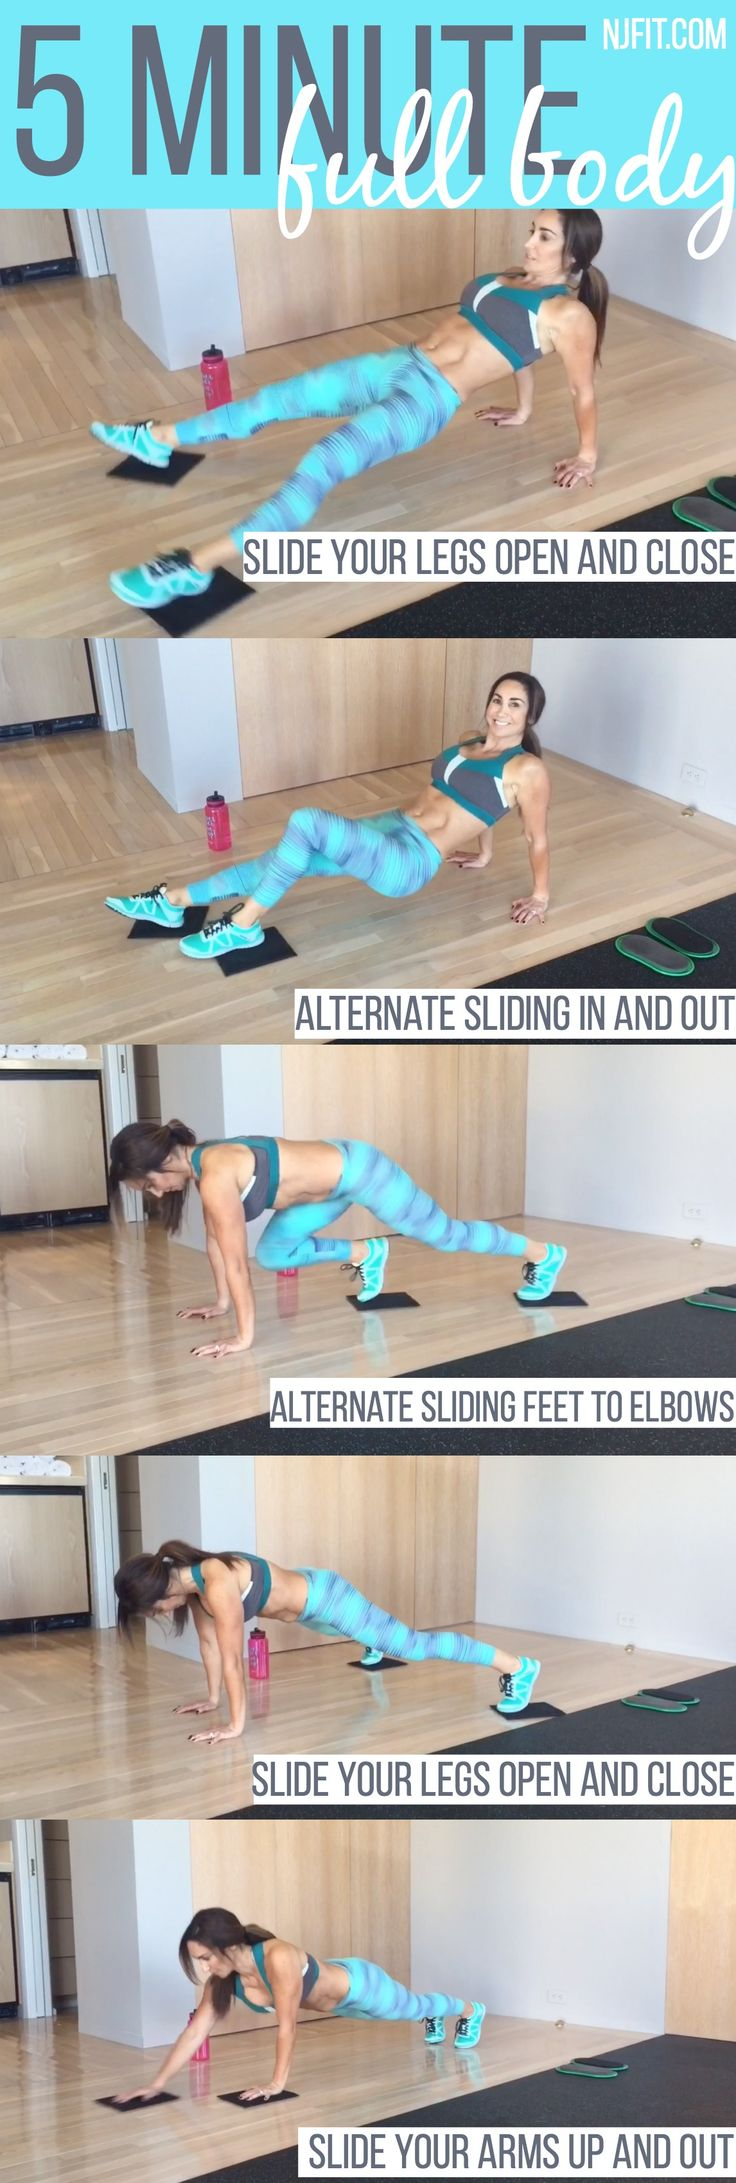 5 minute full body workout! ARE YOU IN? For this workout you will want to use sliders OR you can use a towel on a hard surface OR plates on carpet. Here is the plan   From a reverse bridge hold slide  (Yoga For Beginners)